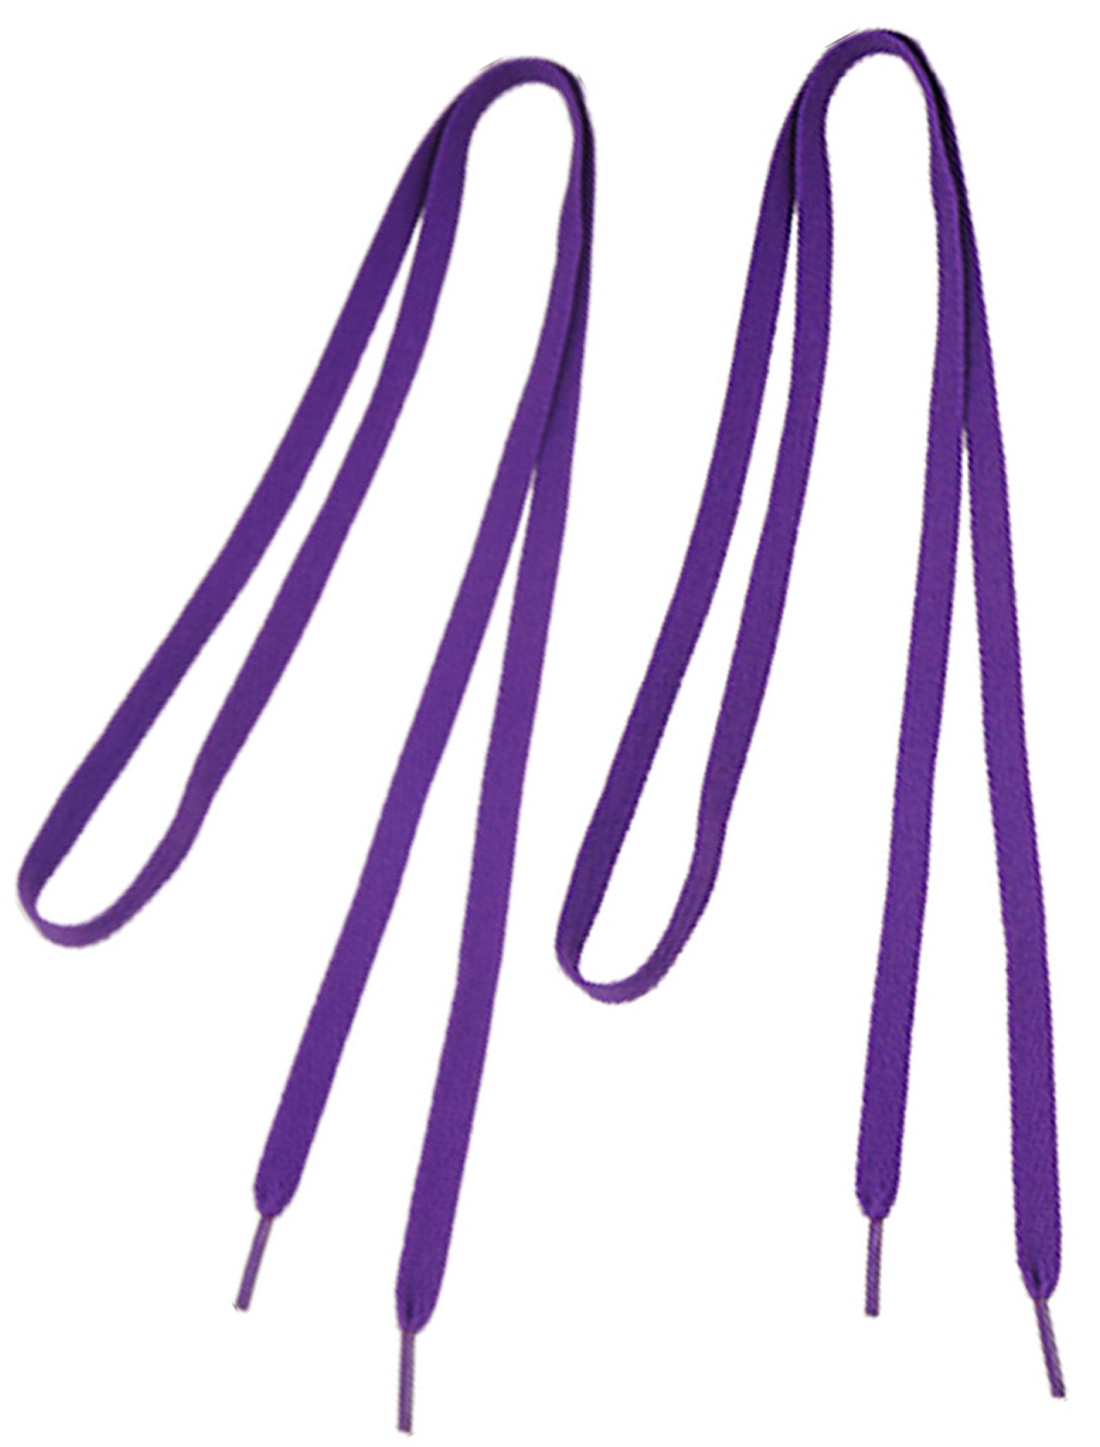 2 Pairs Purple Flat Shoelaces Sports Shoes Strings Replacement for Lady